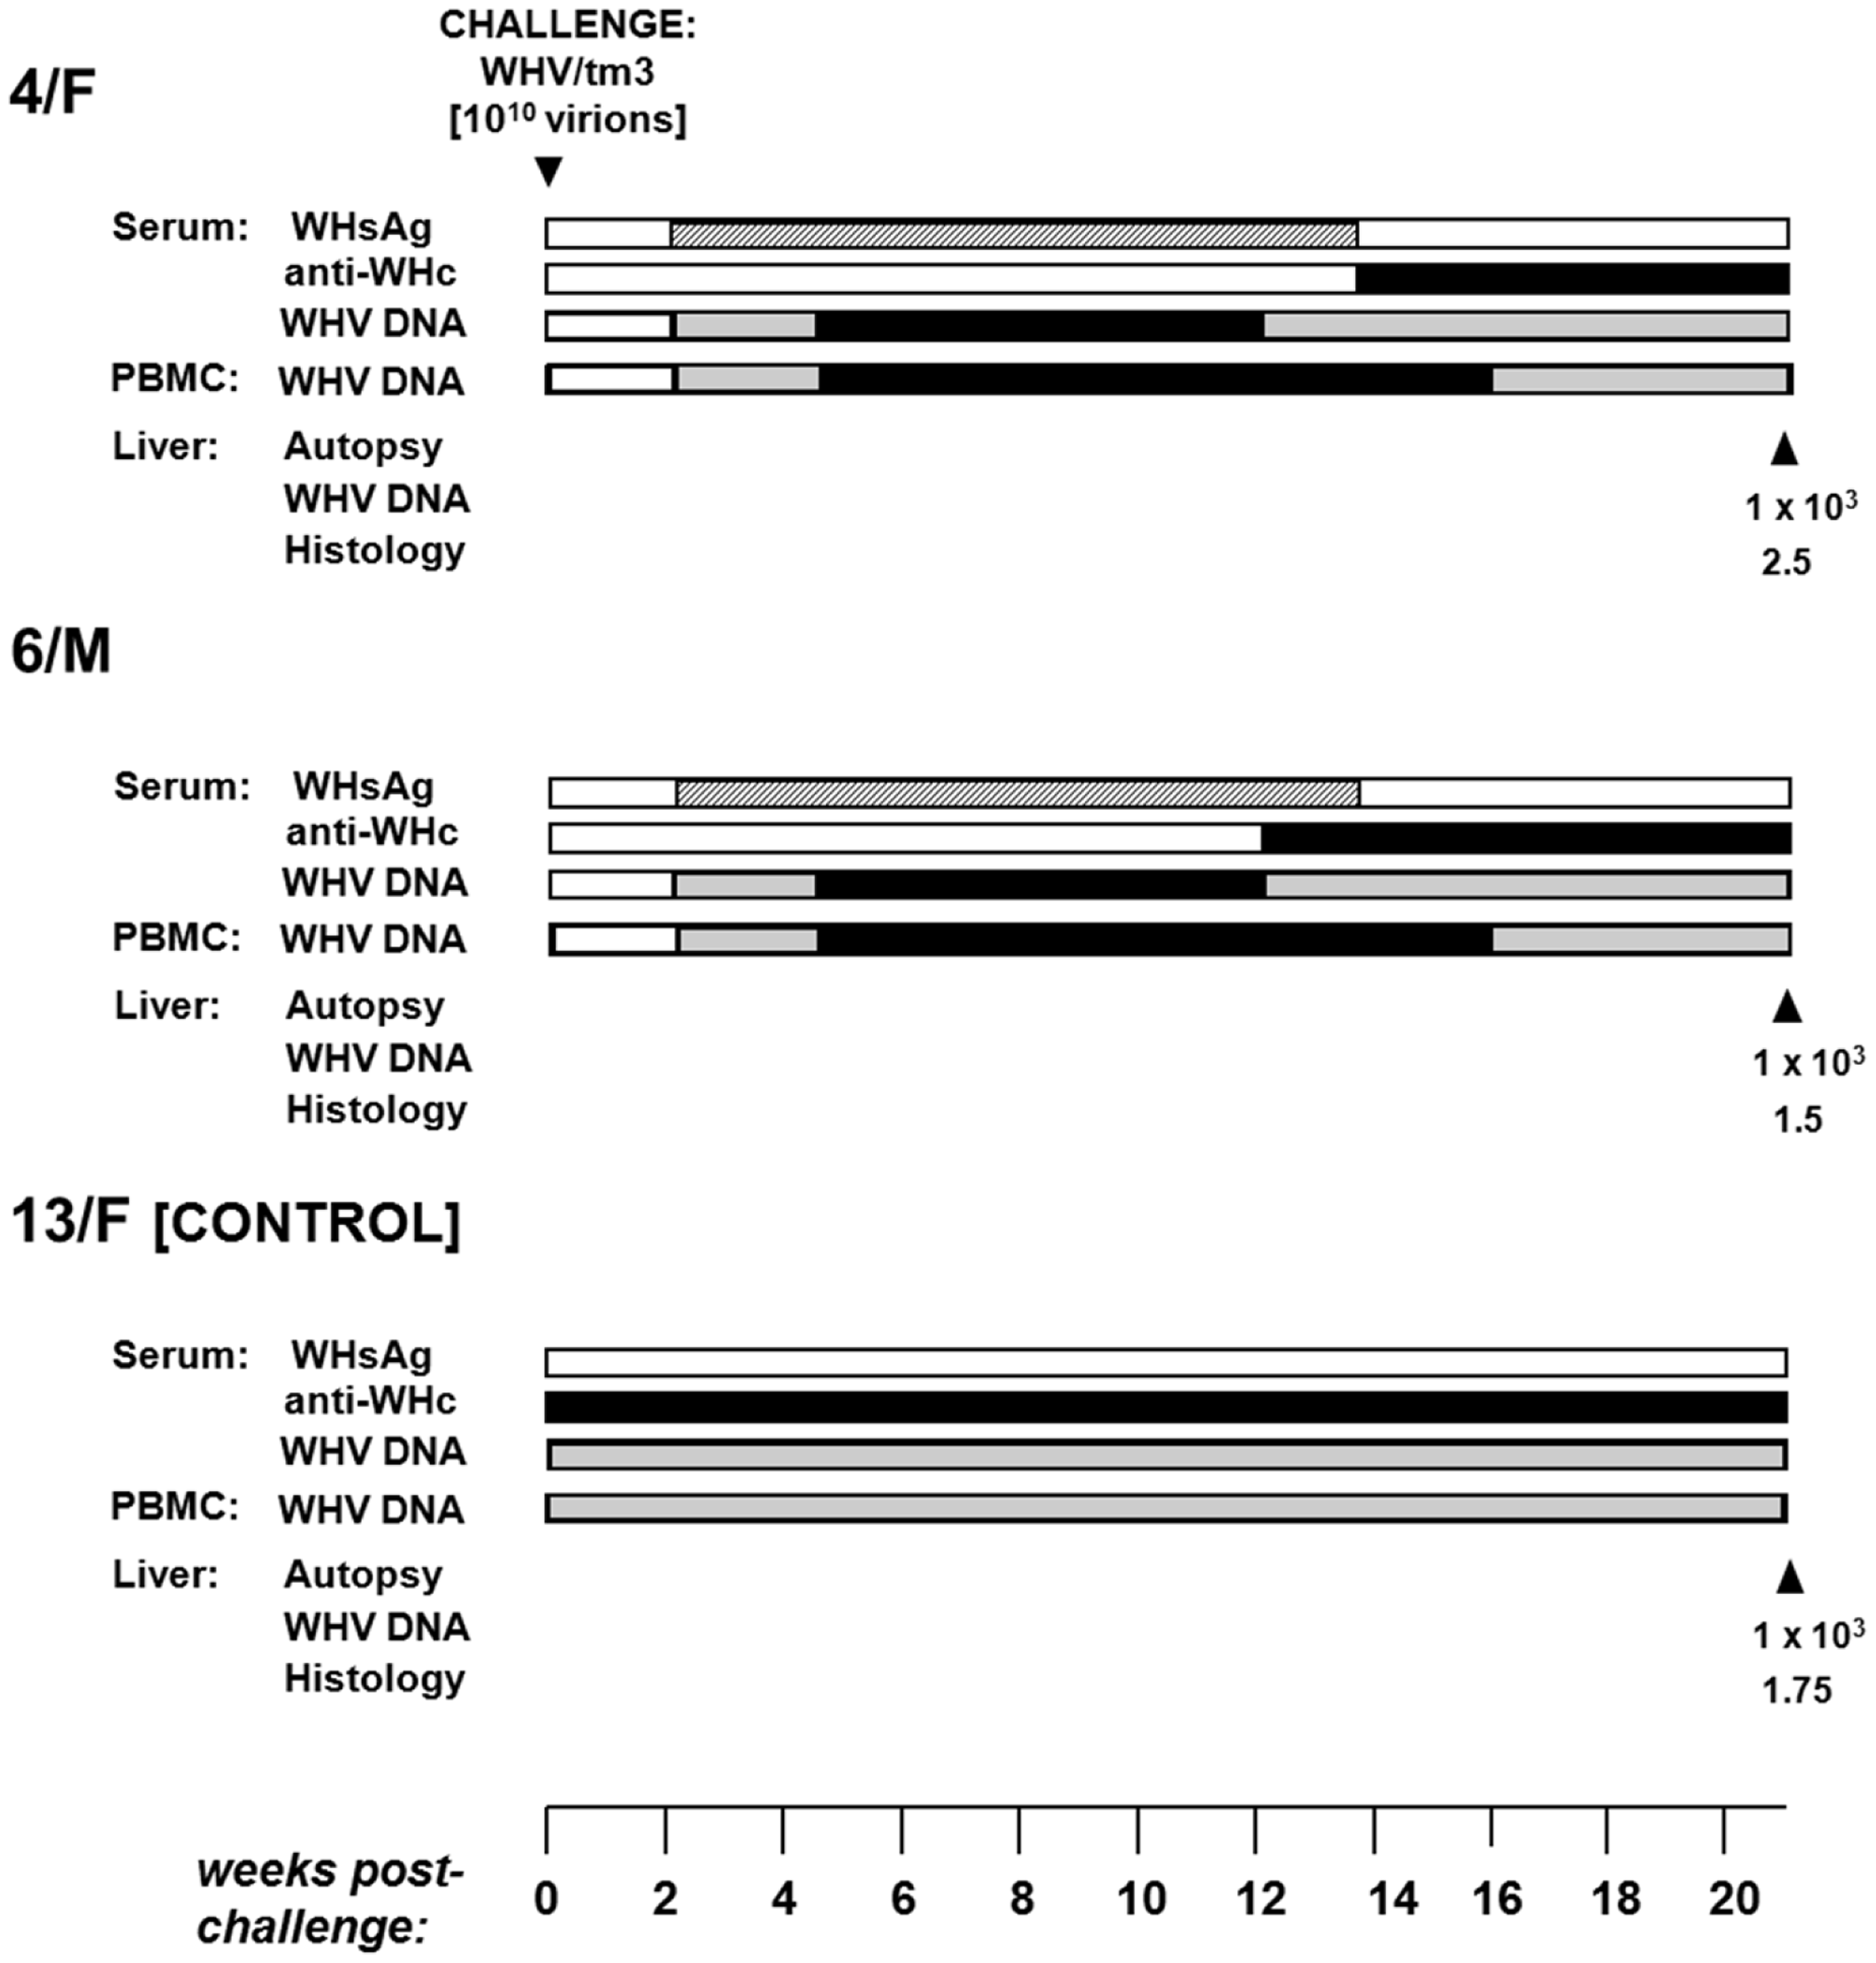 Profiles of serological markers of WHV infection and WHV DNA detection in serum, PBMC and liver tissue samples, and the results on liver histology in 4/F and 6/M woodchucks with POI and in a control 13F animal with SOI after challenge with a single 10<sup>10</sup> virion dose of WHV/tm3.